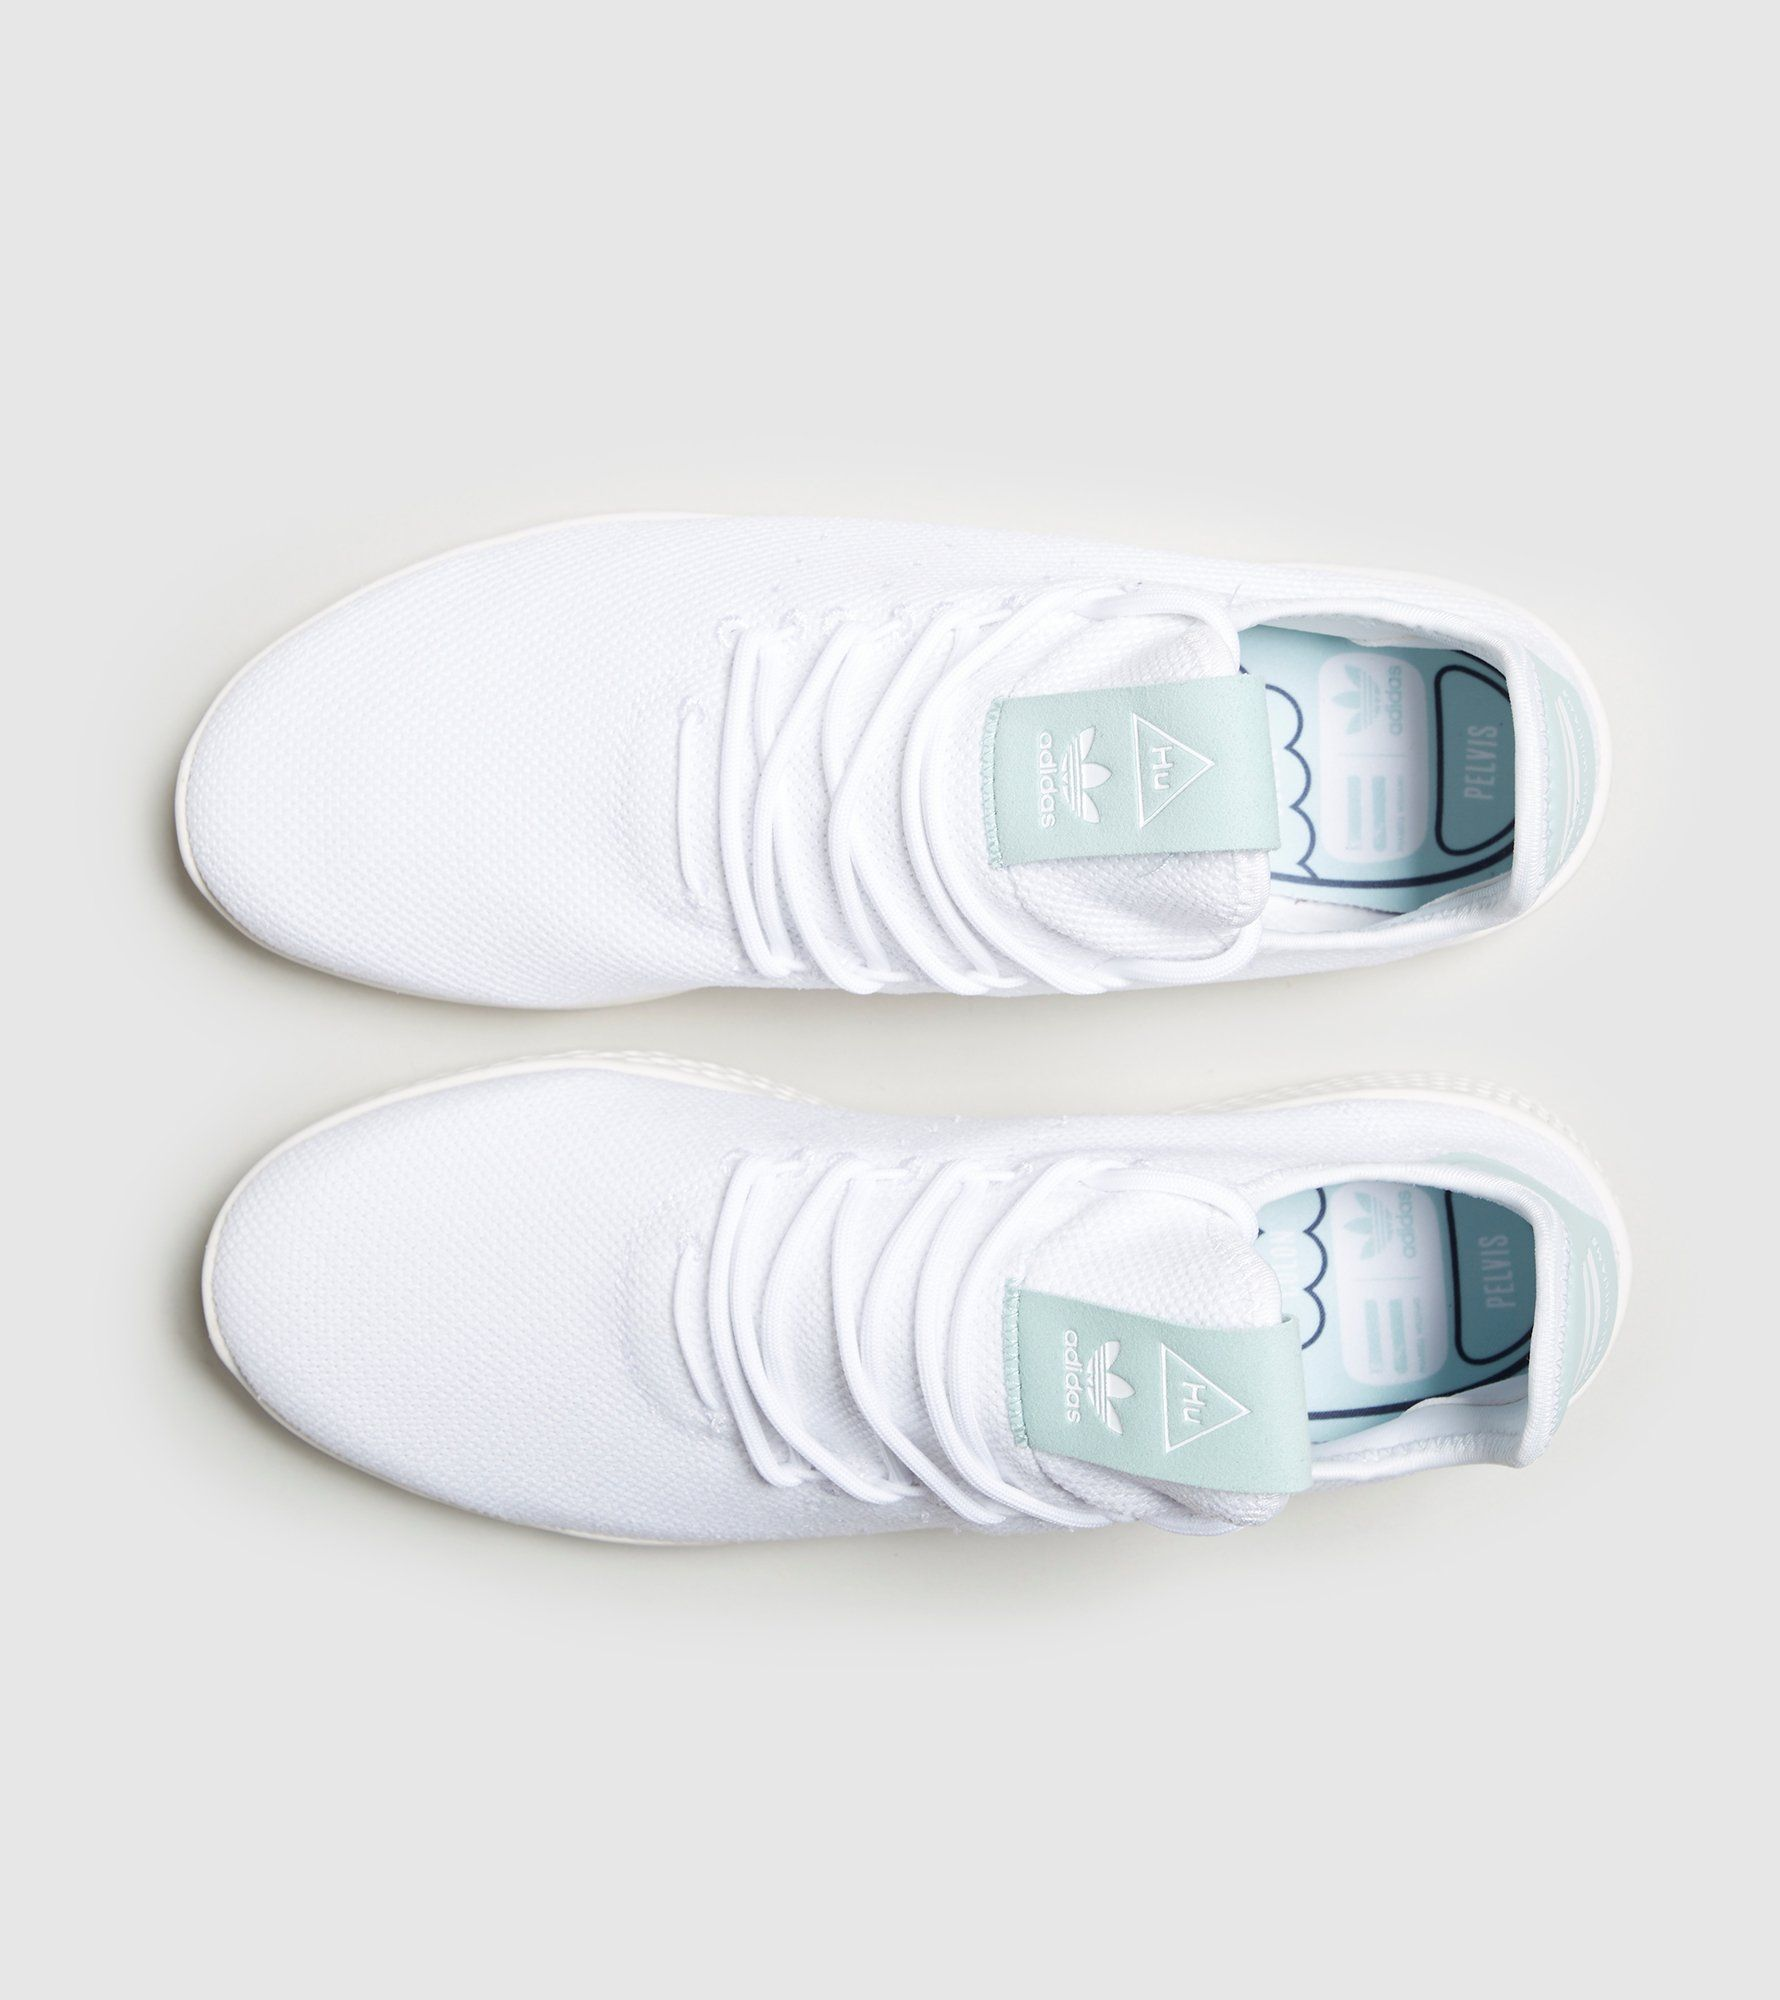 adidas Originals x Pharrell Williams Tennis Hu